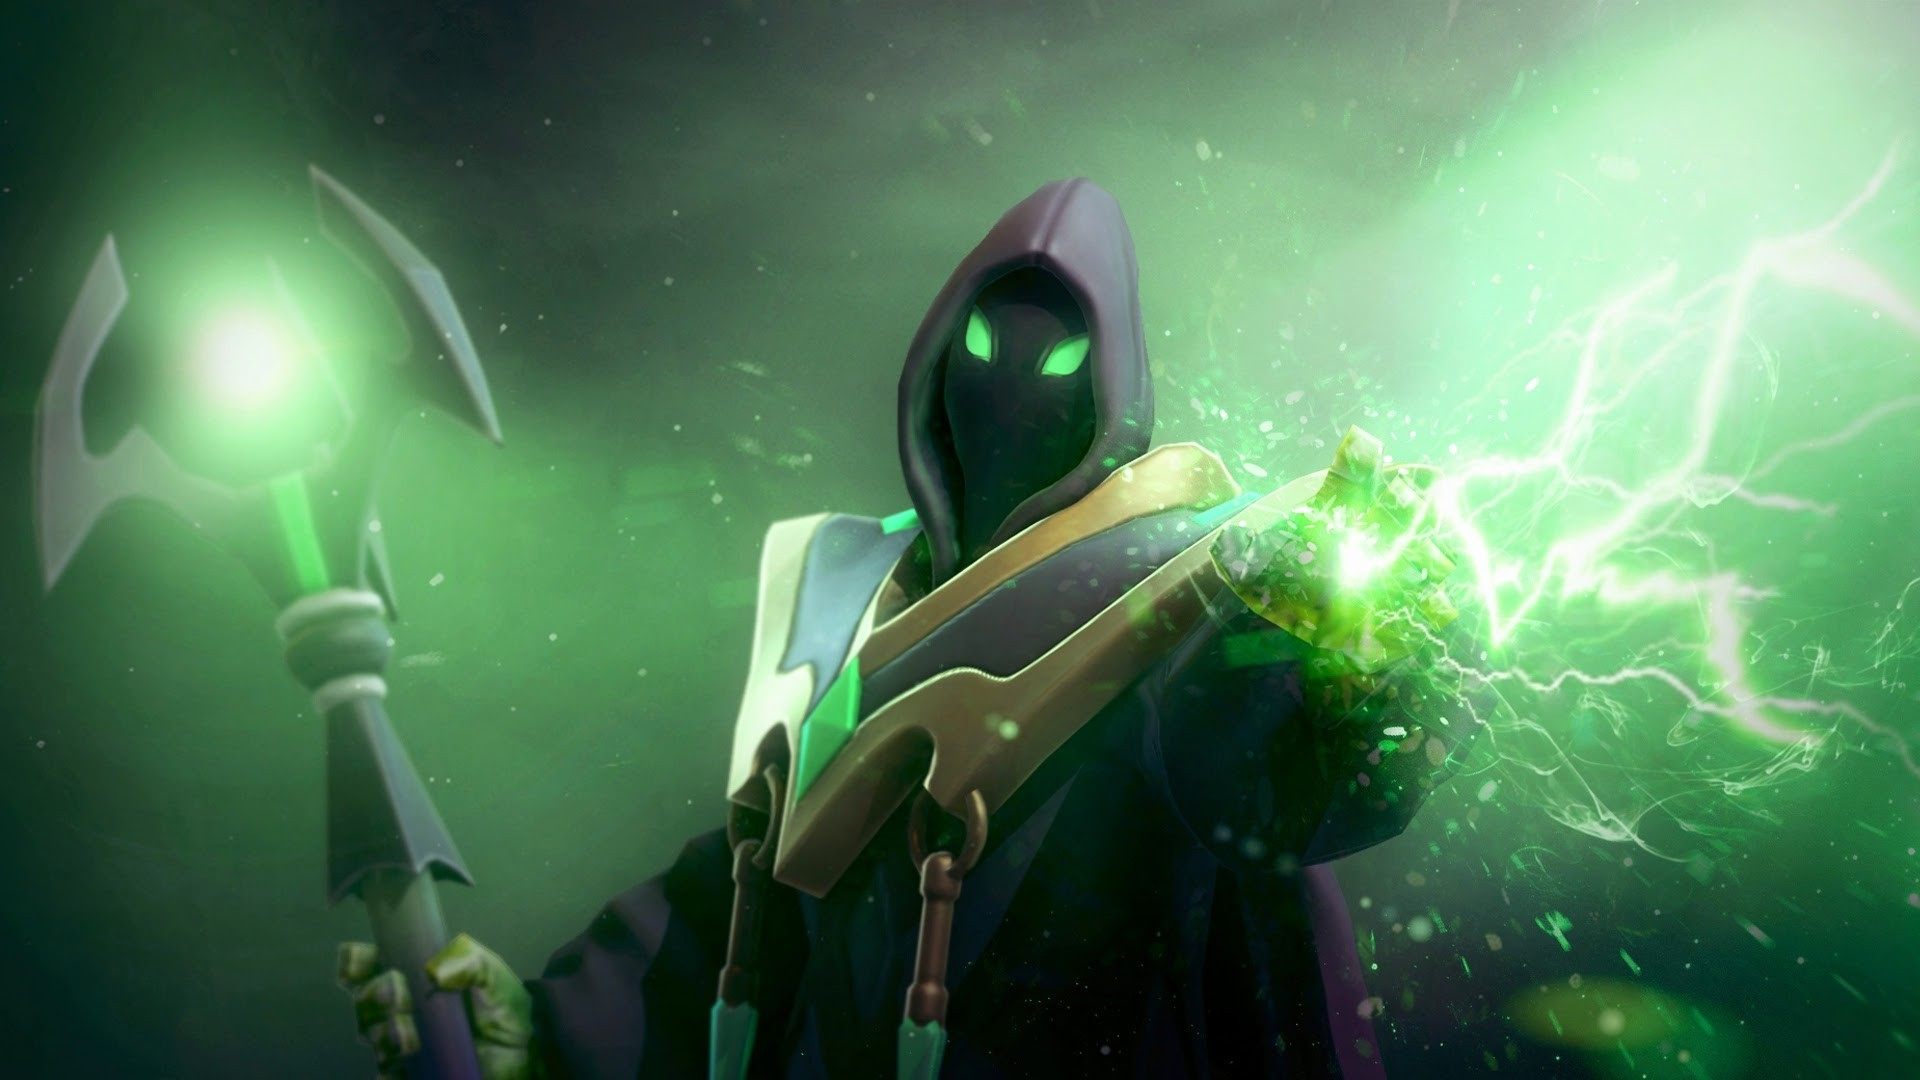 Dota 2 Dota Rubick Rubick The Grand Magus Wallpapers HD